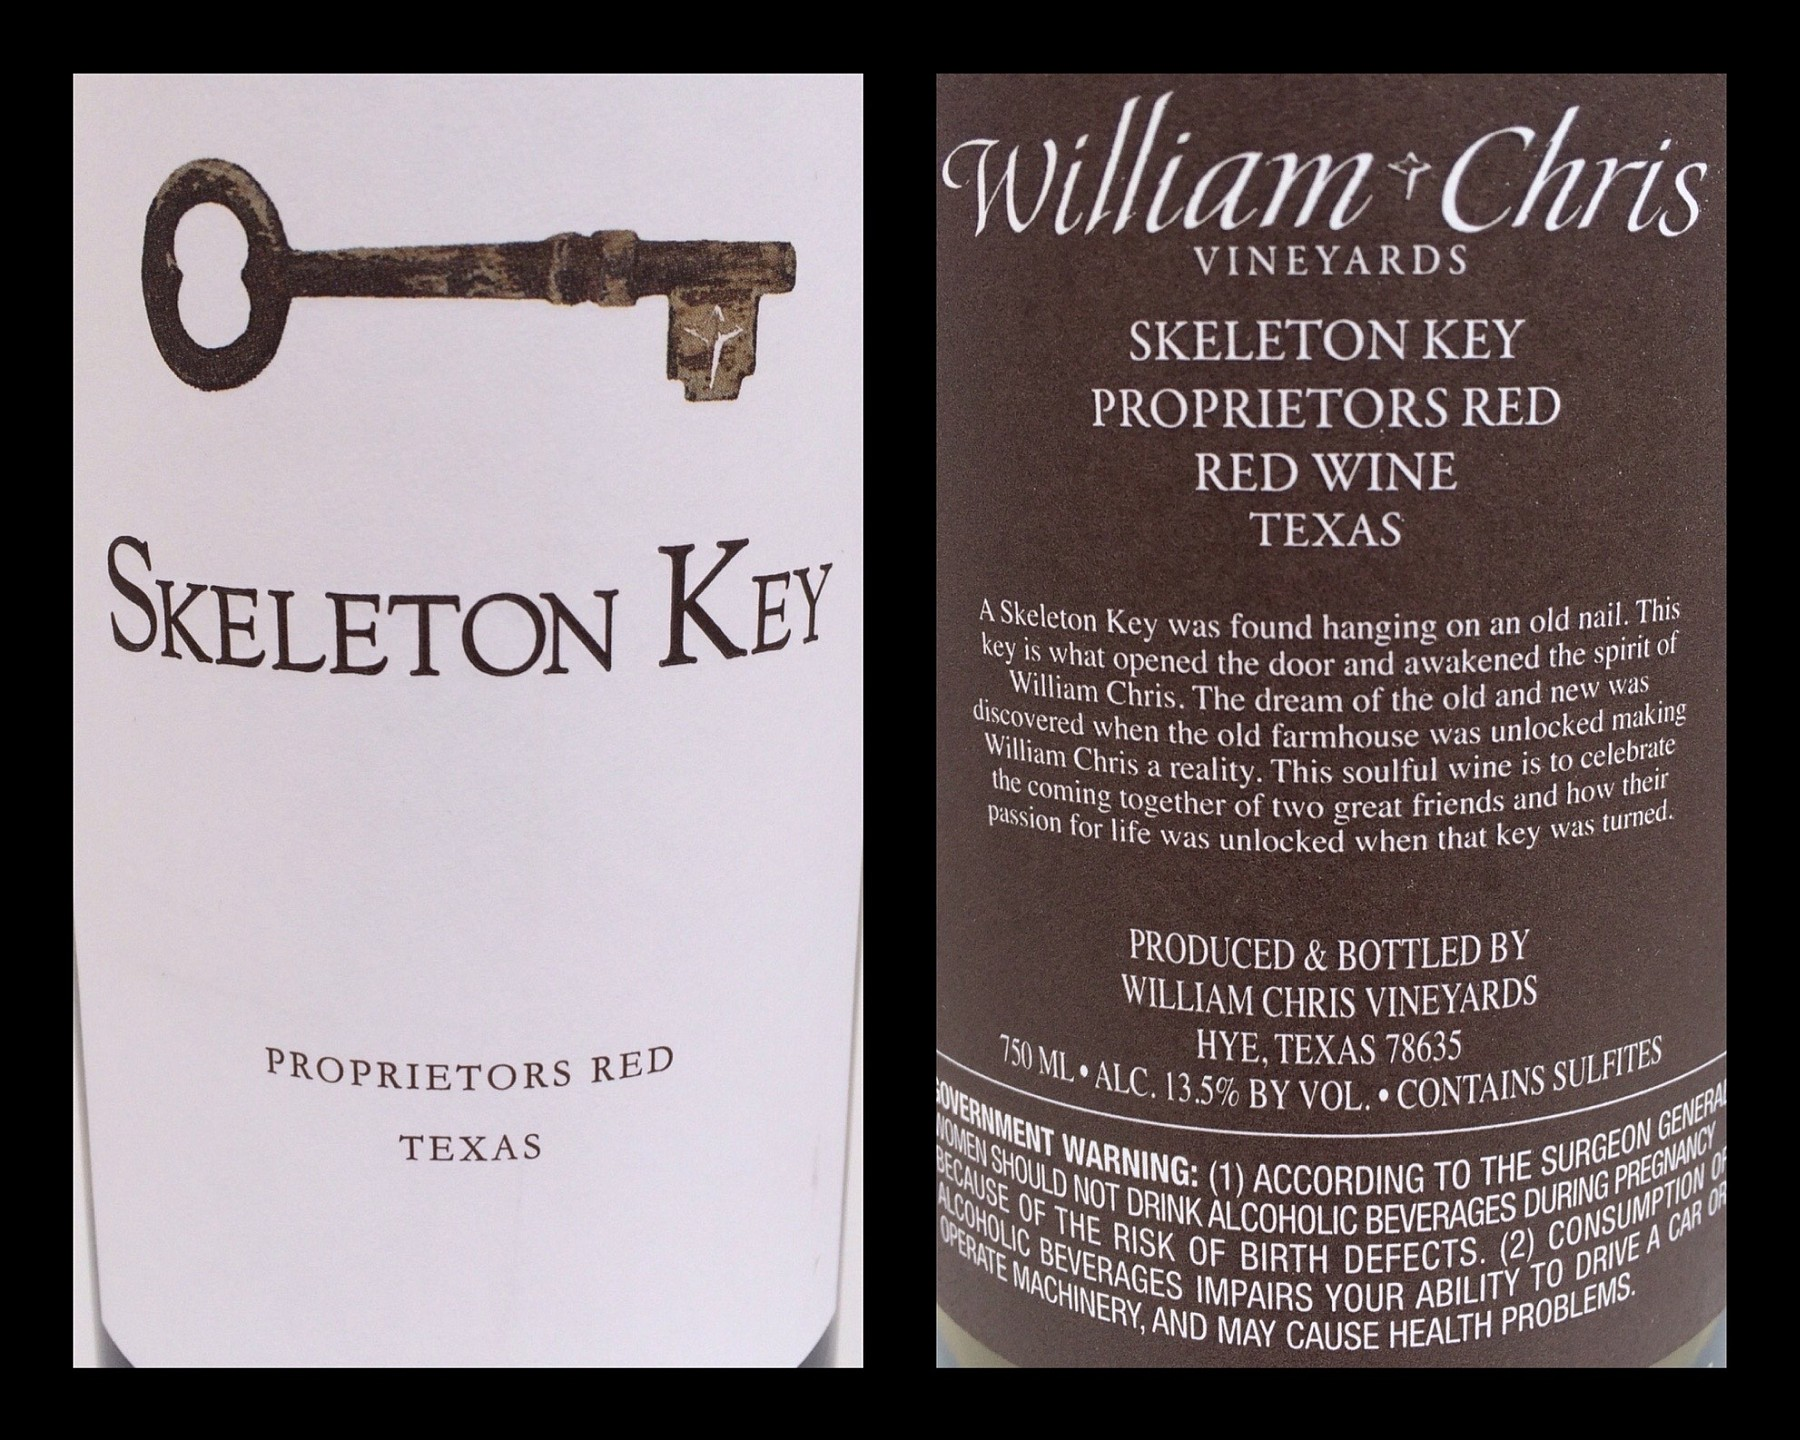 Skeleton Key labels